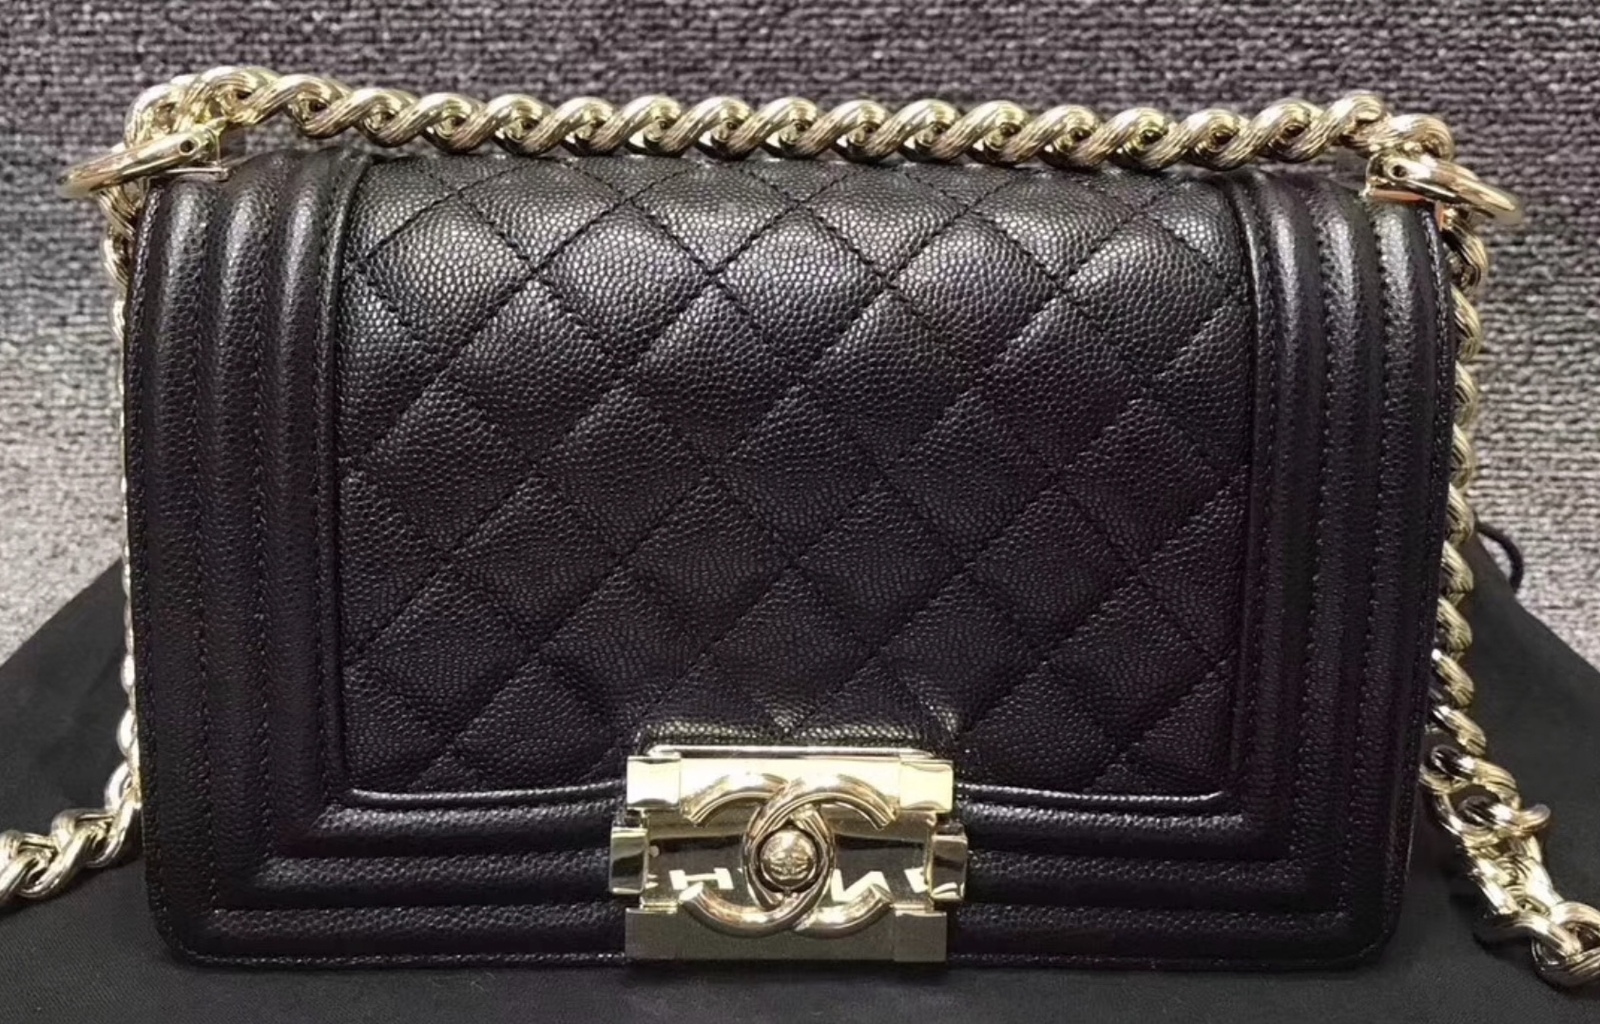 02a48daf81ff NEW 100% AUTHENTIC CHANEL 2017 BLACK QUILTED CAVIAR SMALL BOY FLAP ...